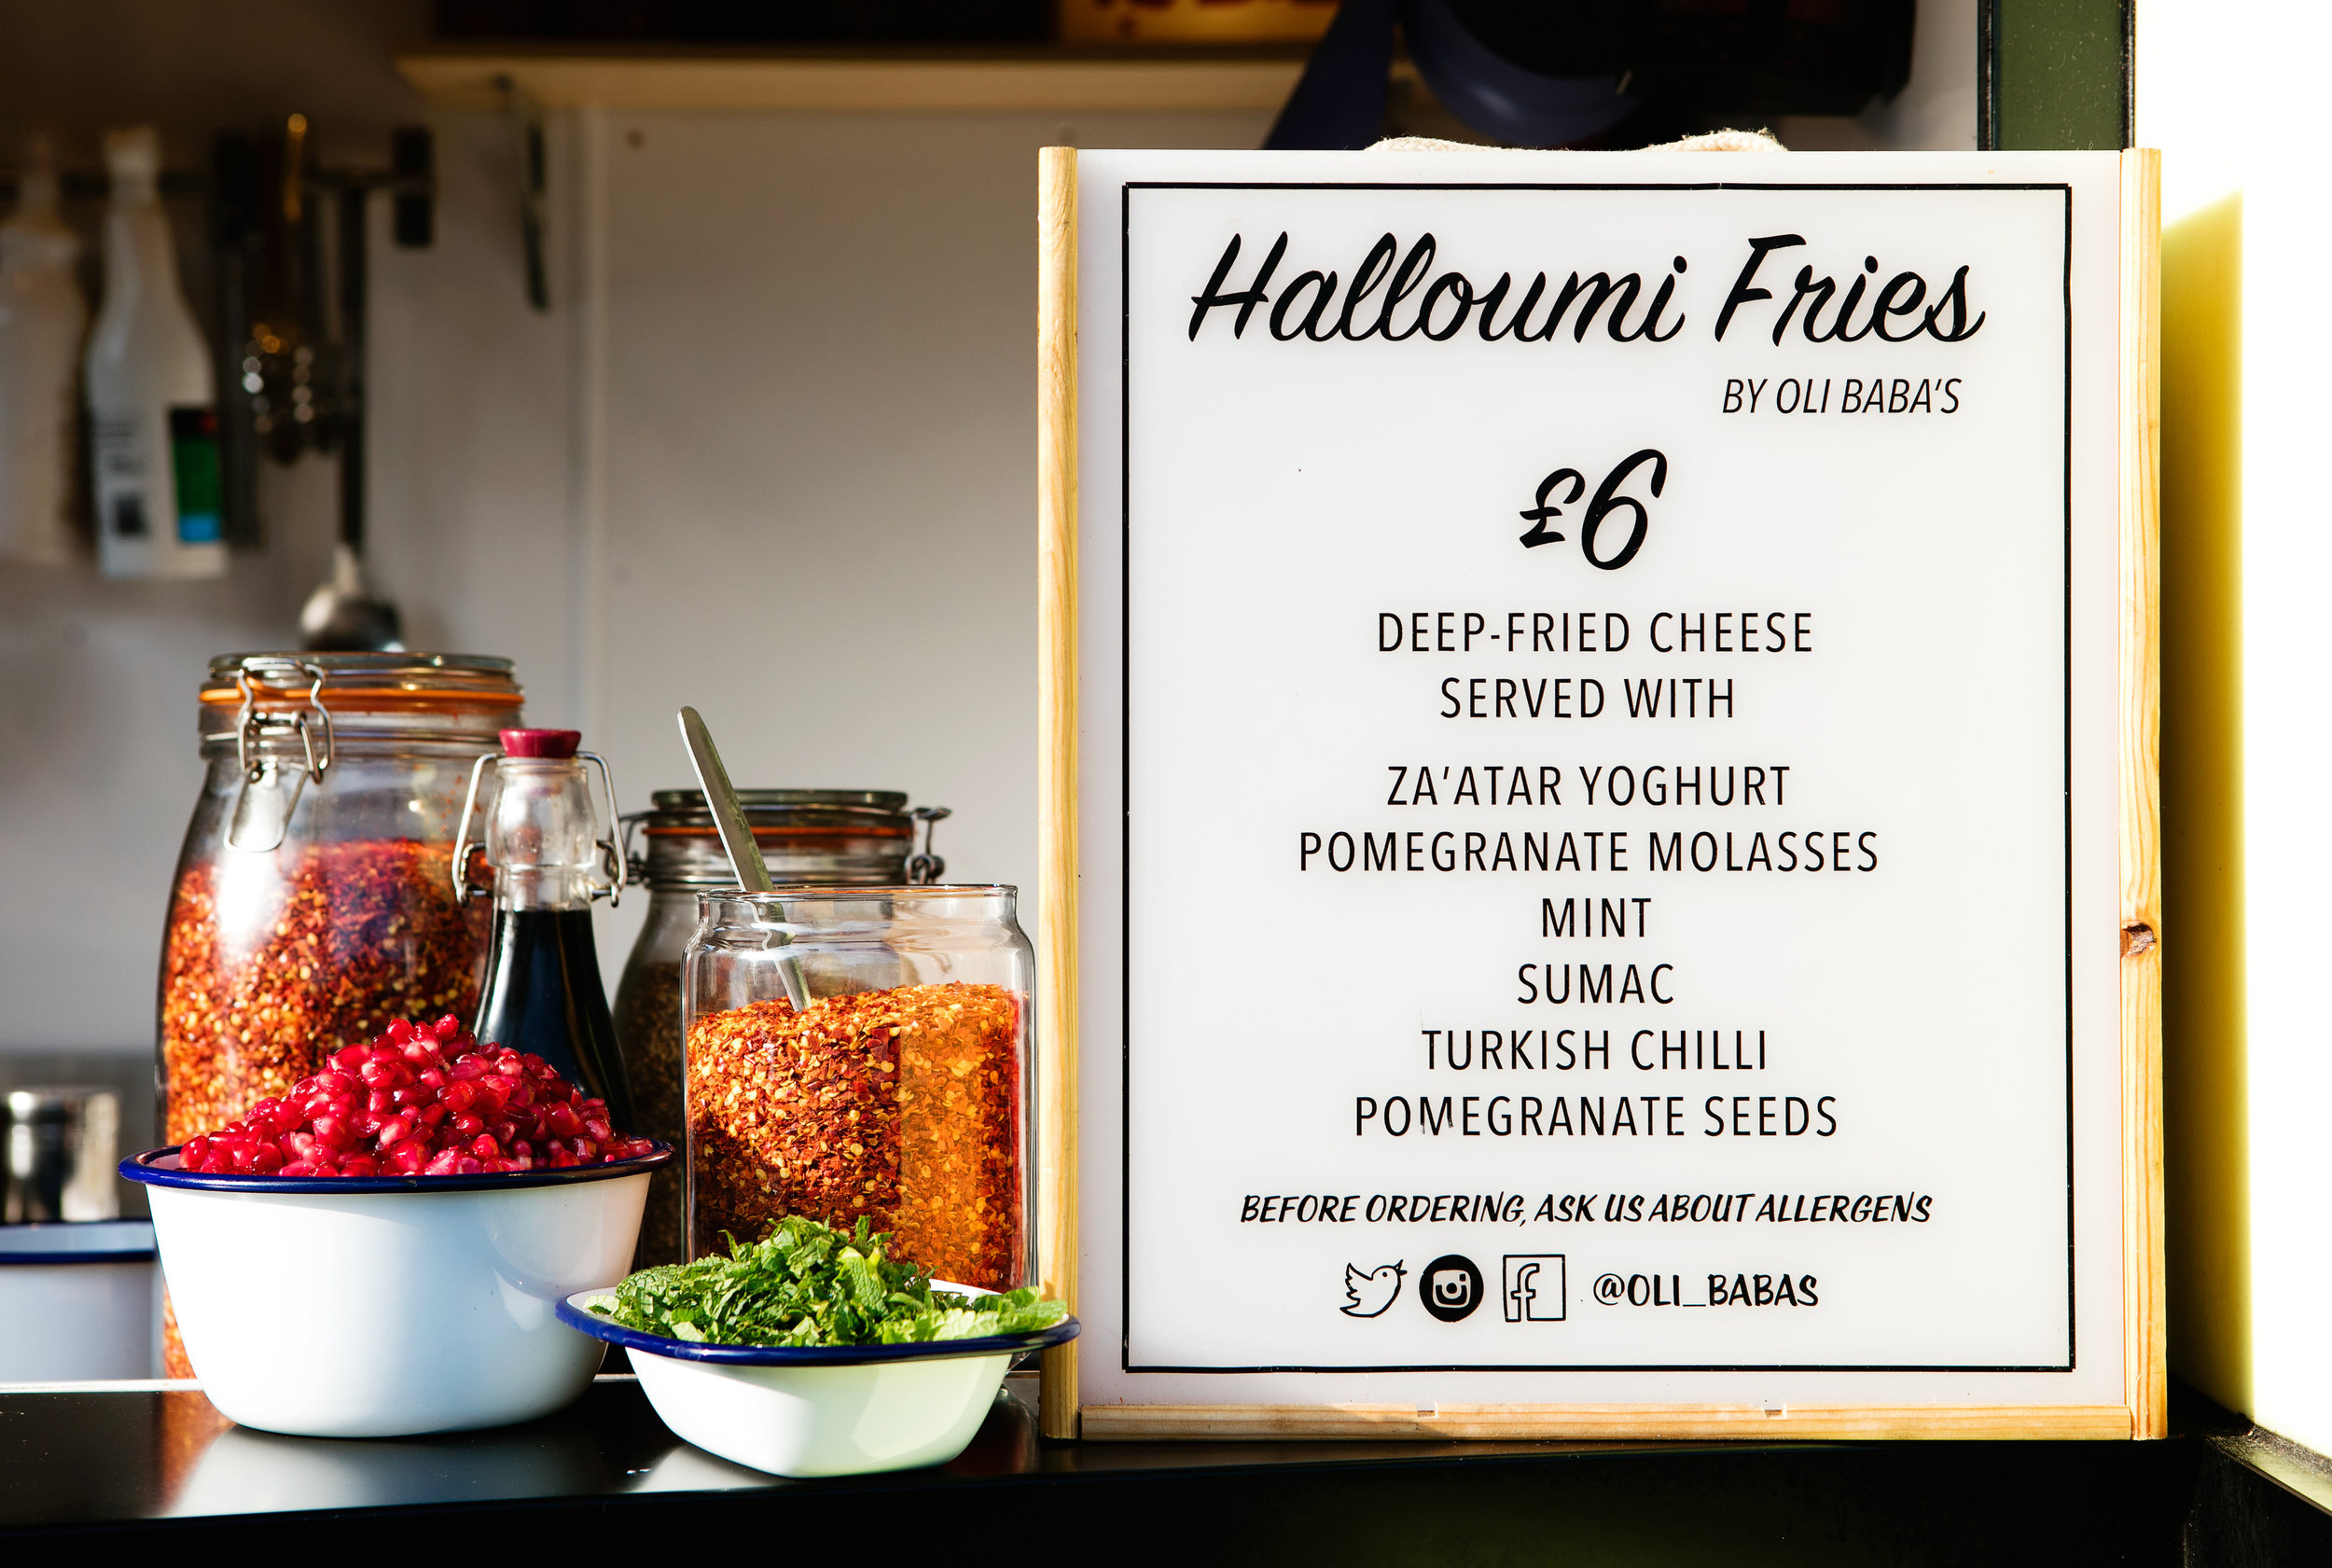 halloumi_fries_camden_02.jpg